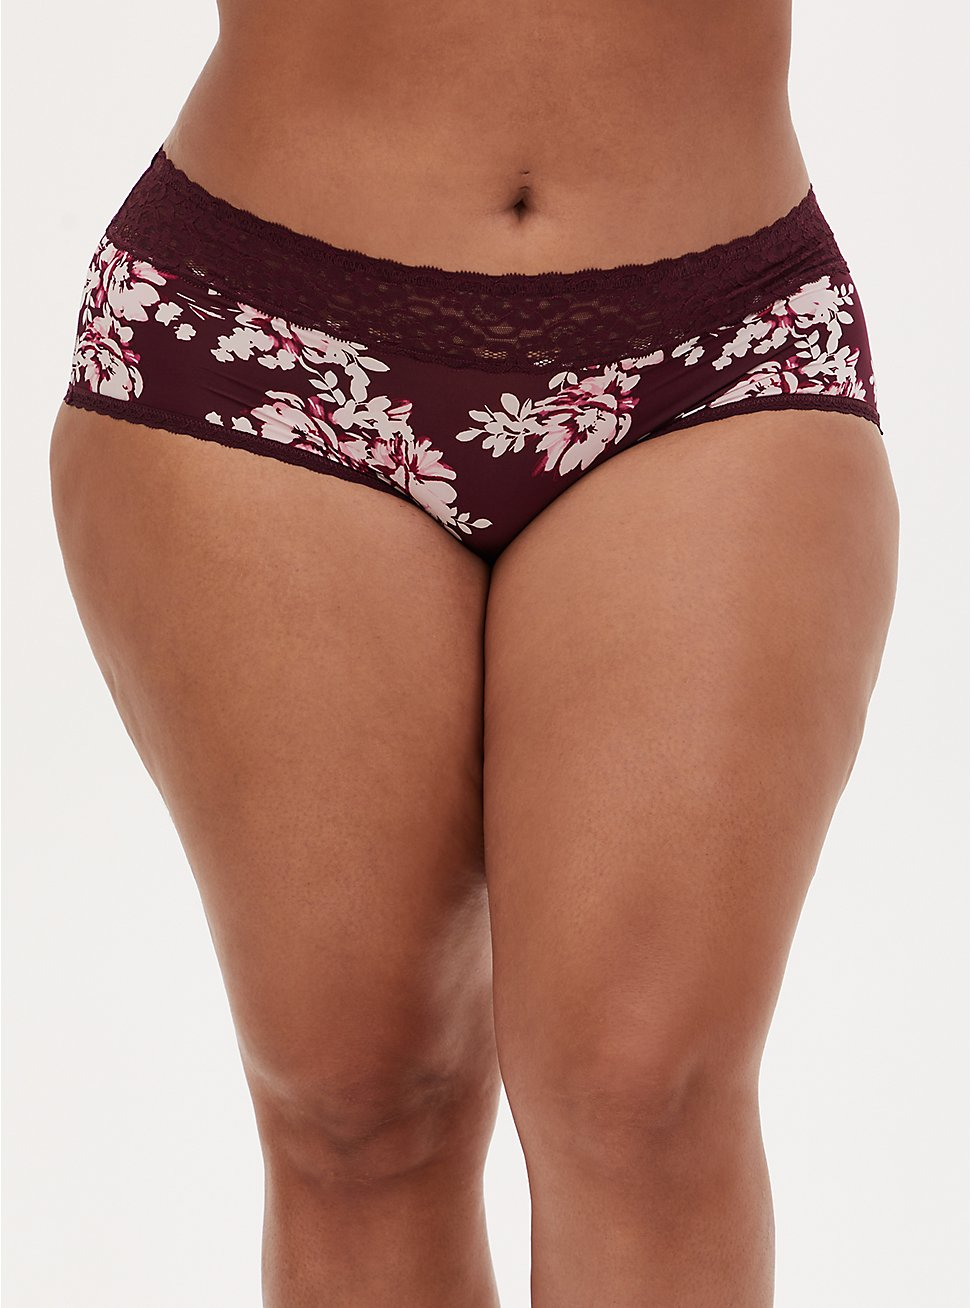 Burgundy Purple Floral Second Skin Cheeky Panty, WINETASTING, hi-res